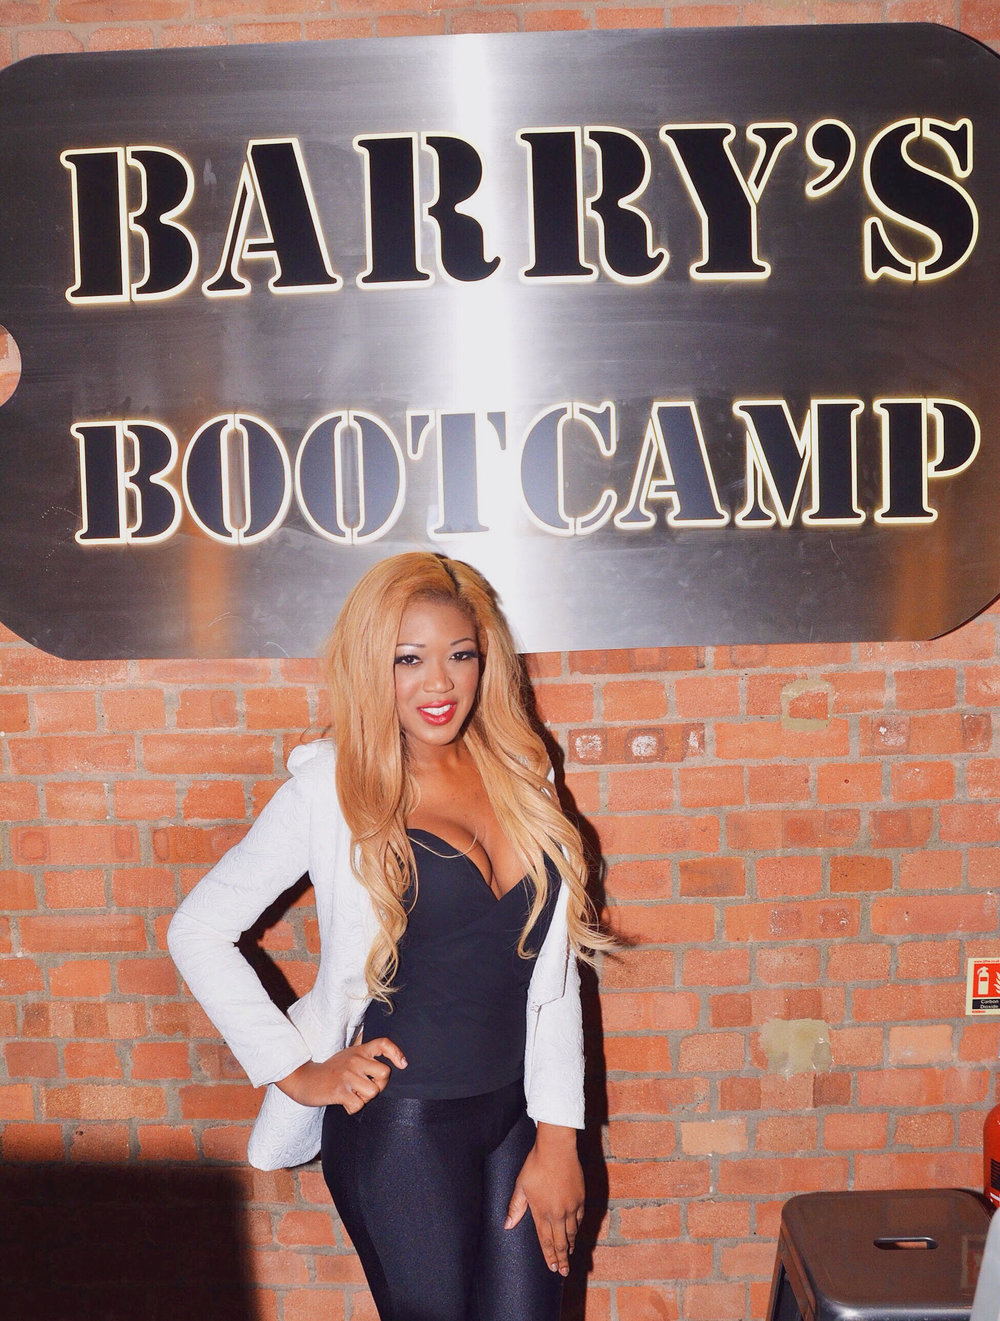 gina rio + georgina rio + hot + body + big brother + uk + style + outfit + blogger + vlogger + london + barrys bootcamp .jpg